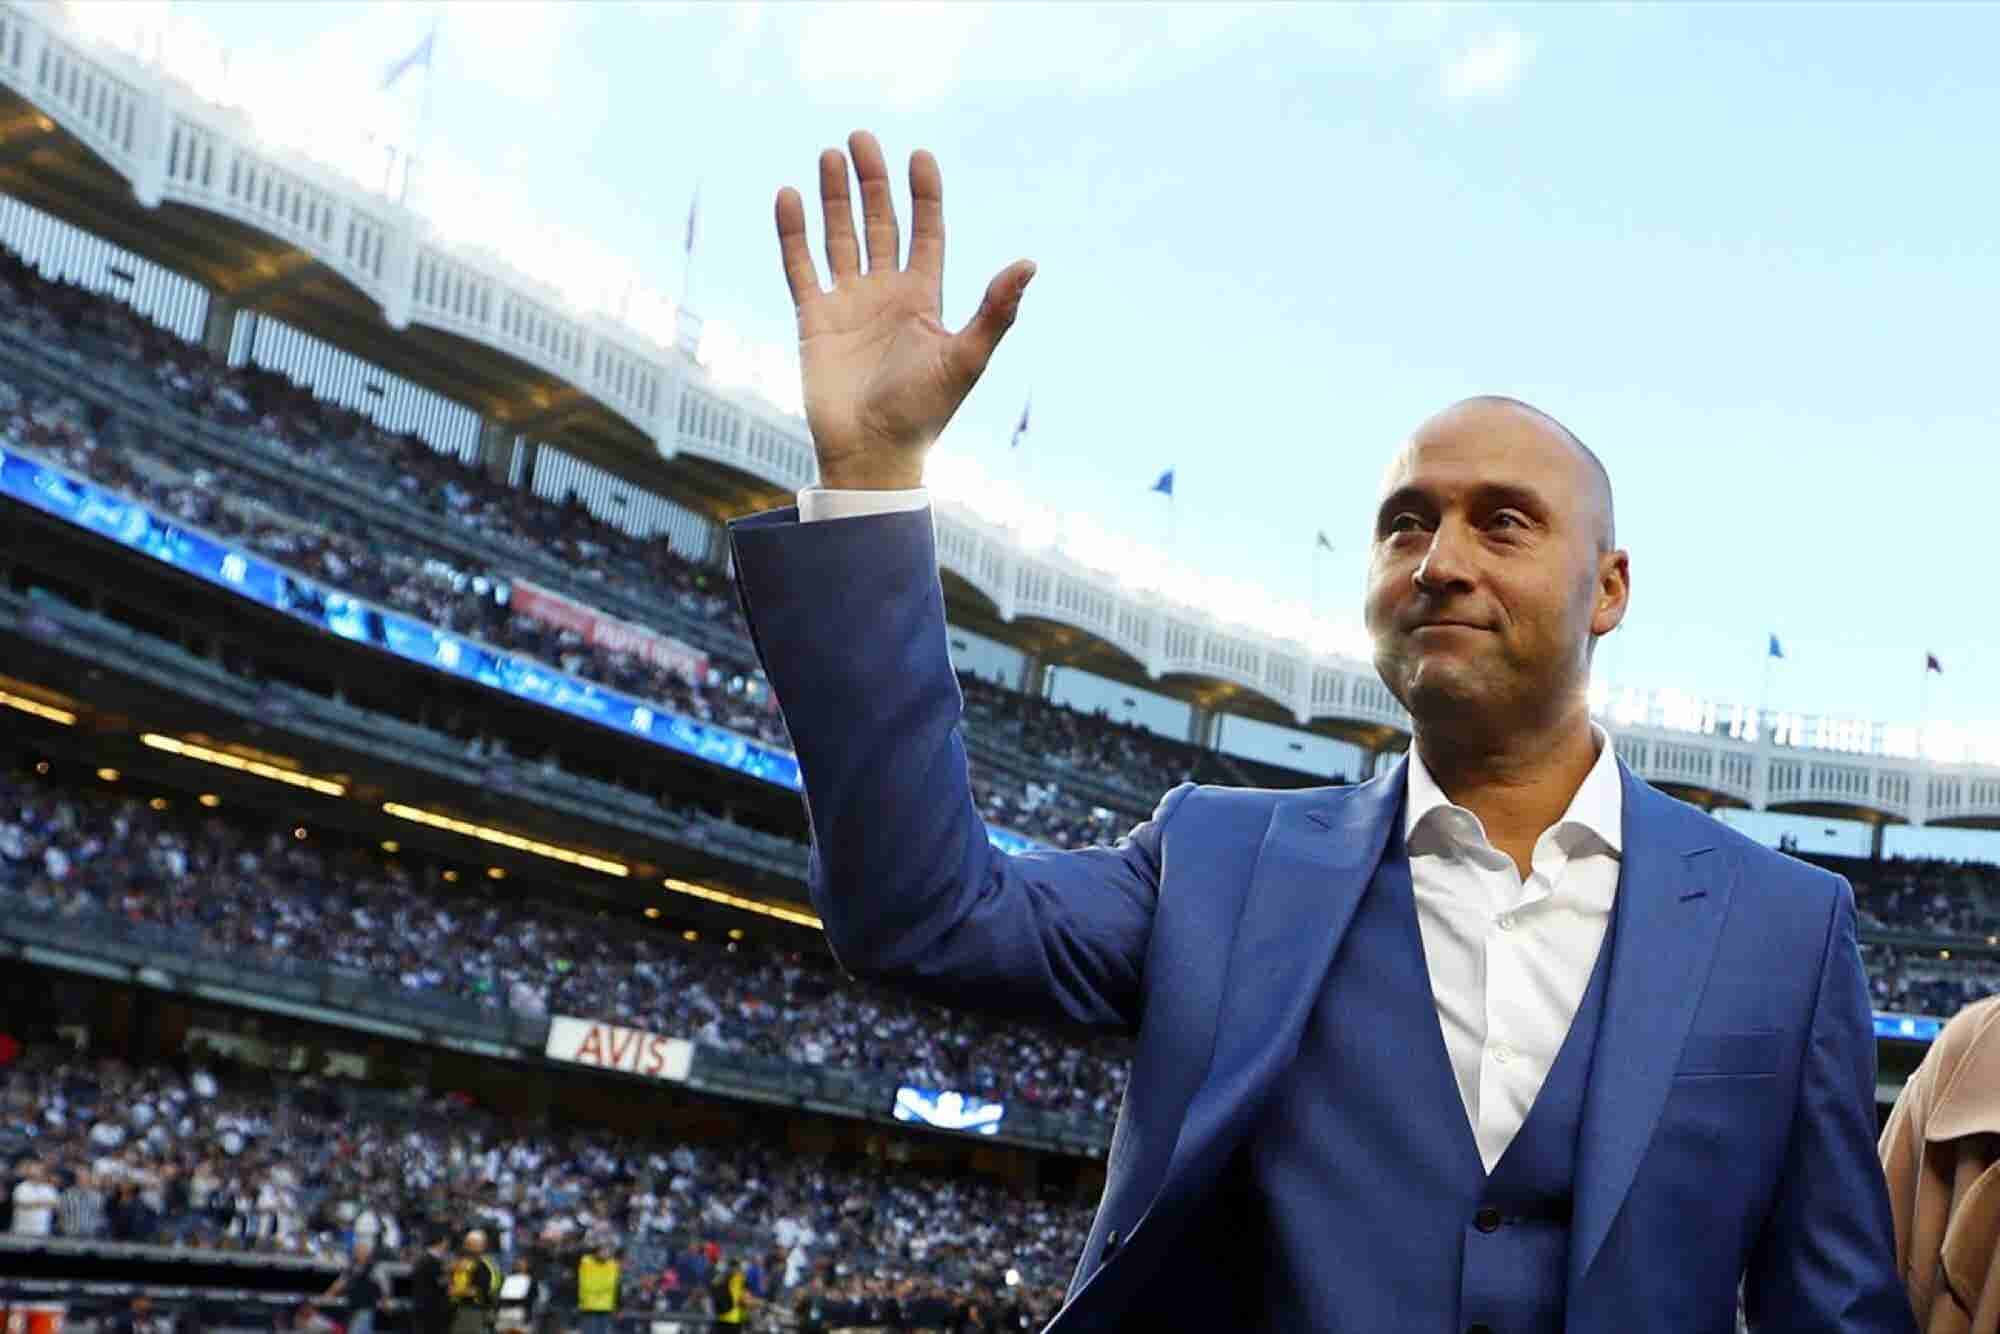 Derek Jeter on What Motivates Him